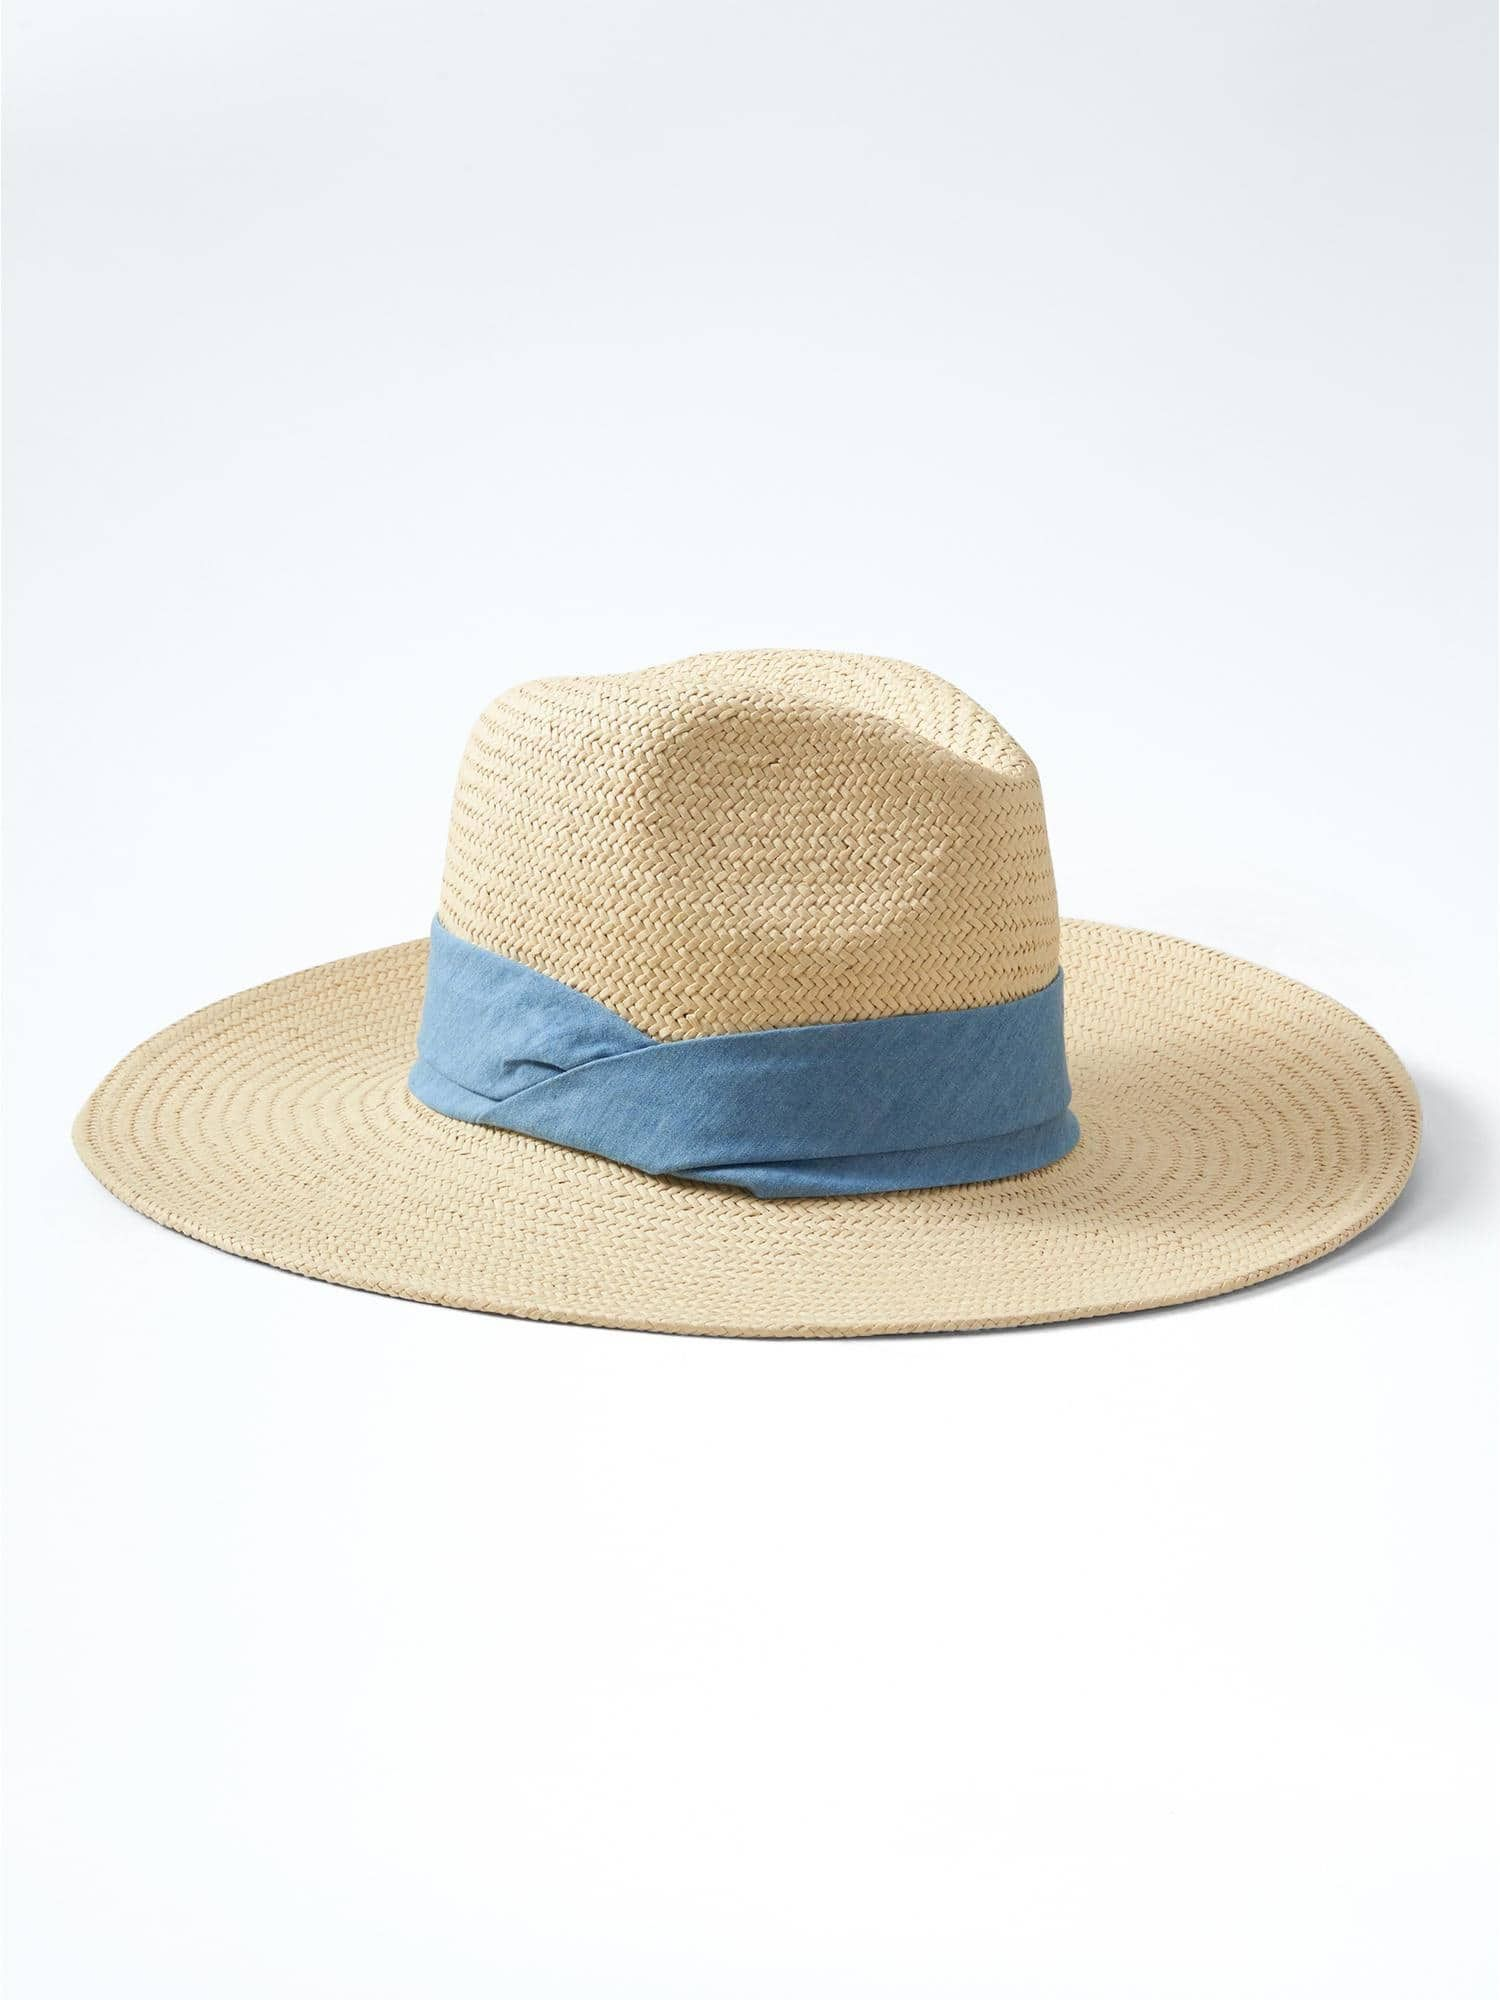 c8d4be12 Wide Brim Straw Hat | Banana Republic | Walk Walk Work it Baby ...